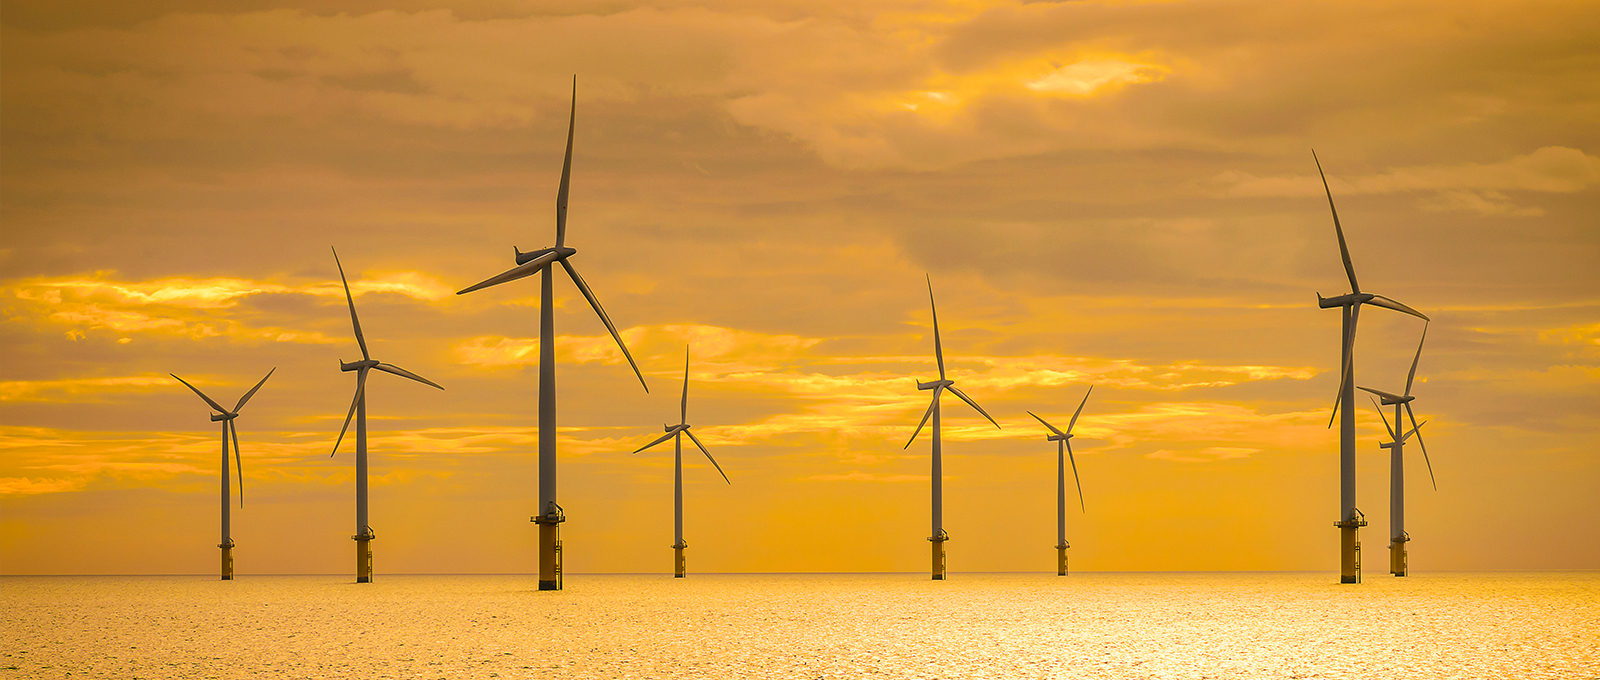 Prysmian finalises the agreement with Vattenfall for the first subsidy - free offshore wind project